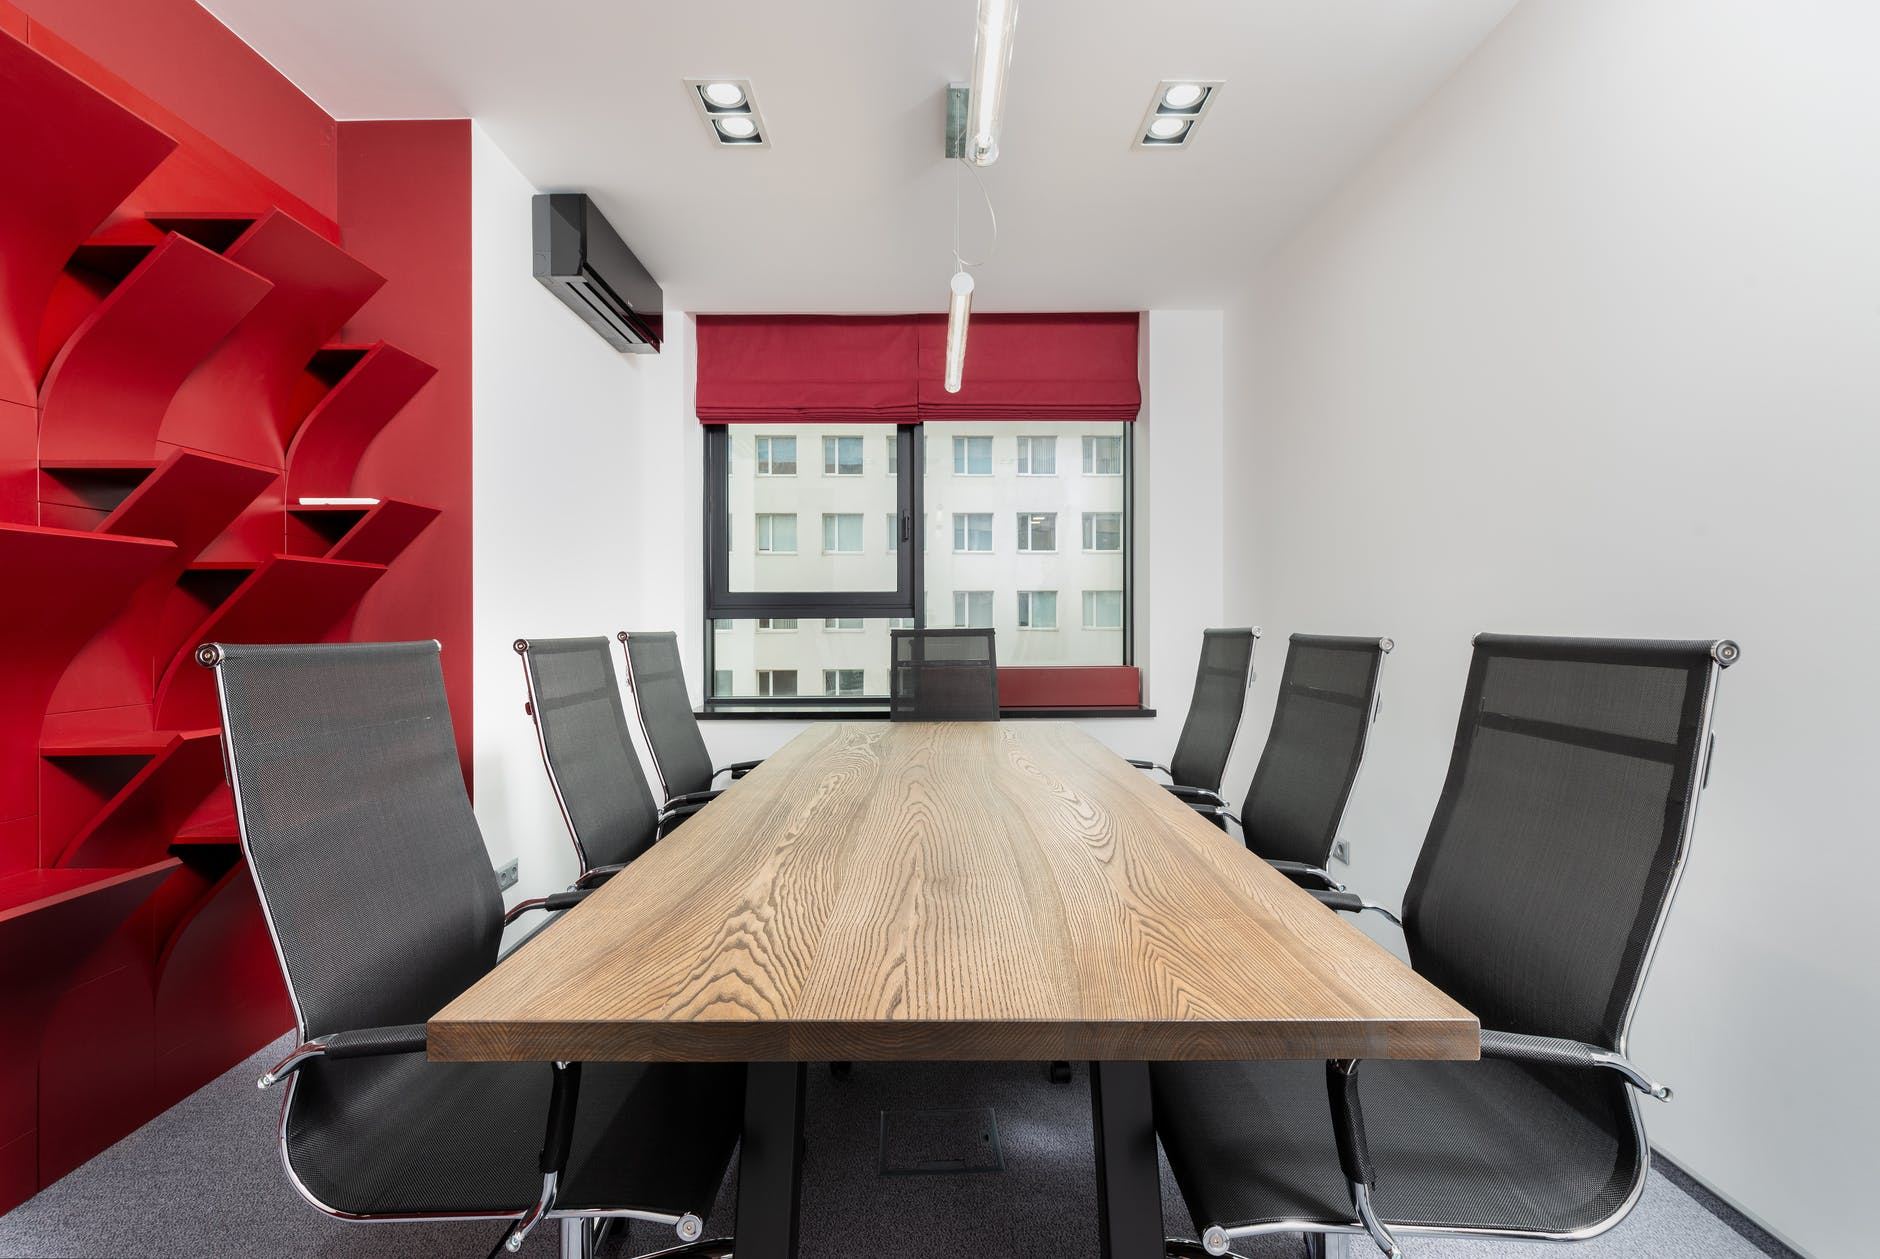 3 Ways to Use Audio Visual Communication Systems in Your Organization